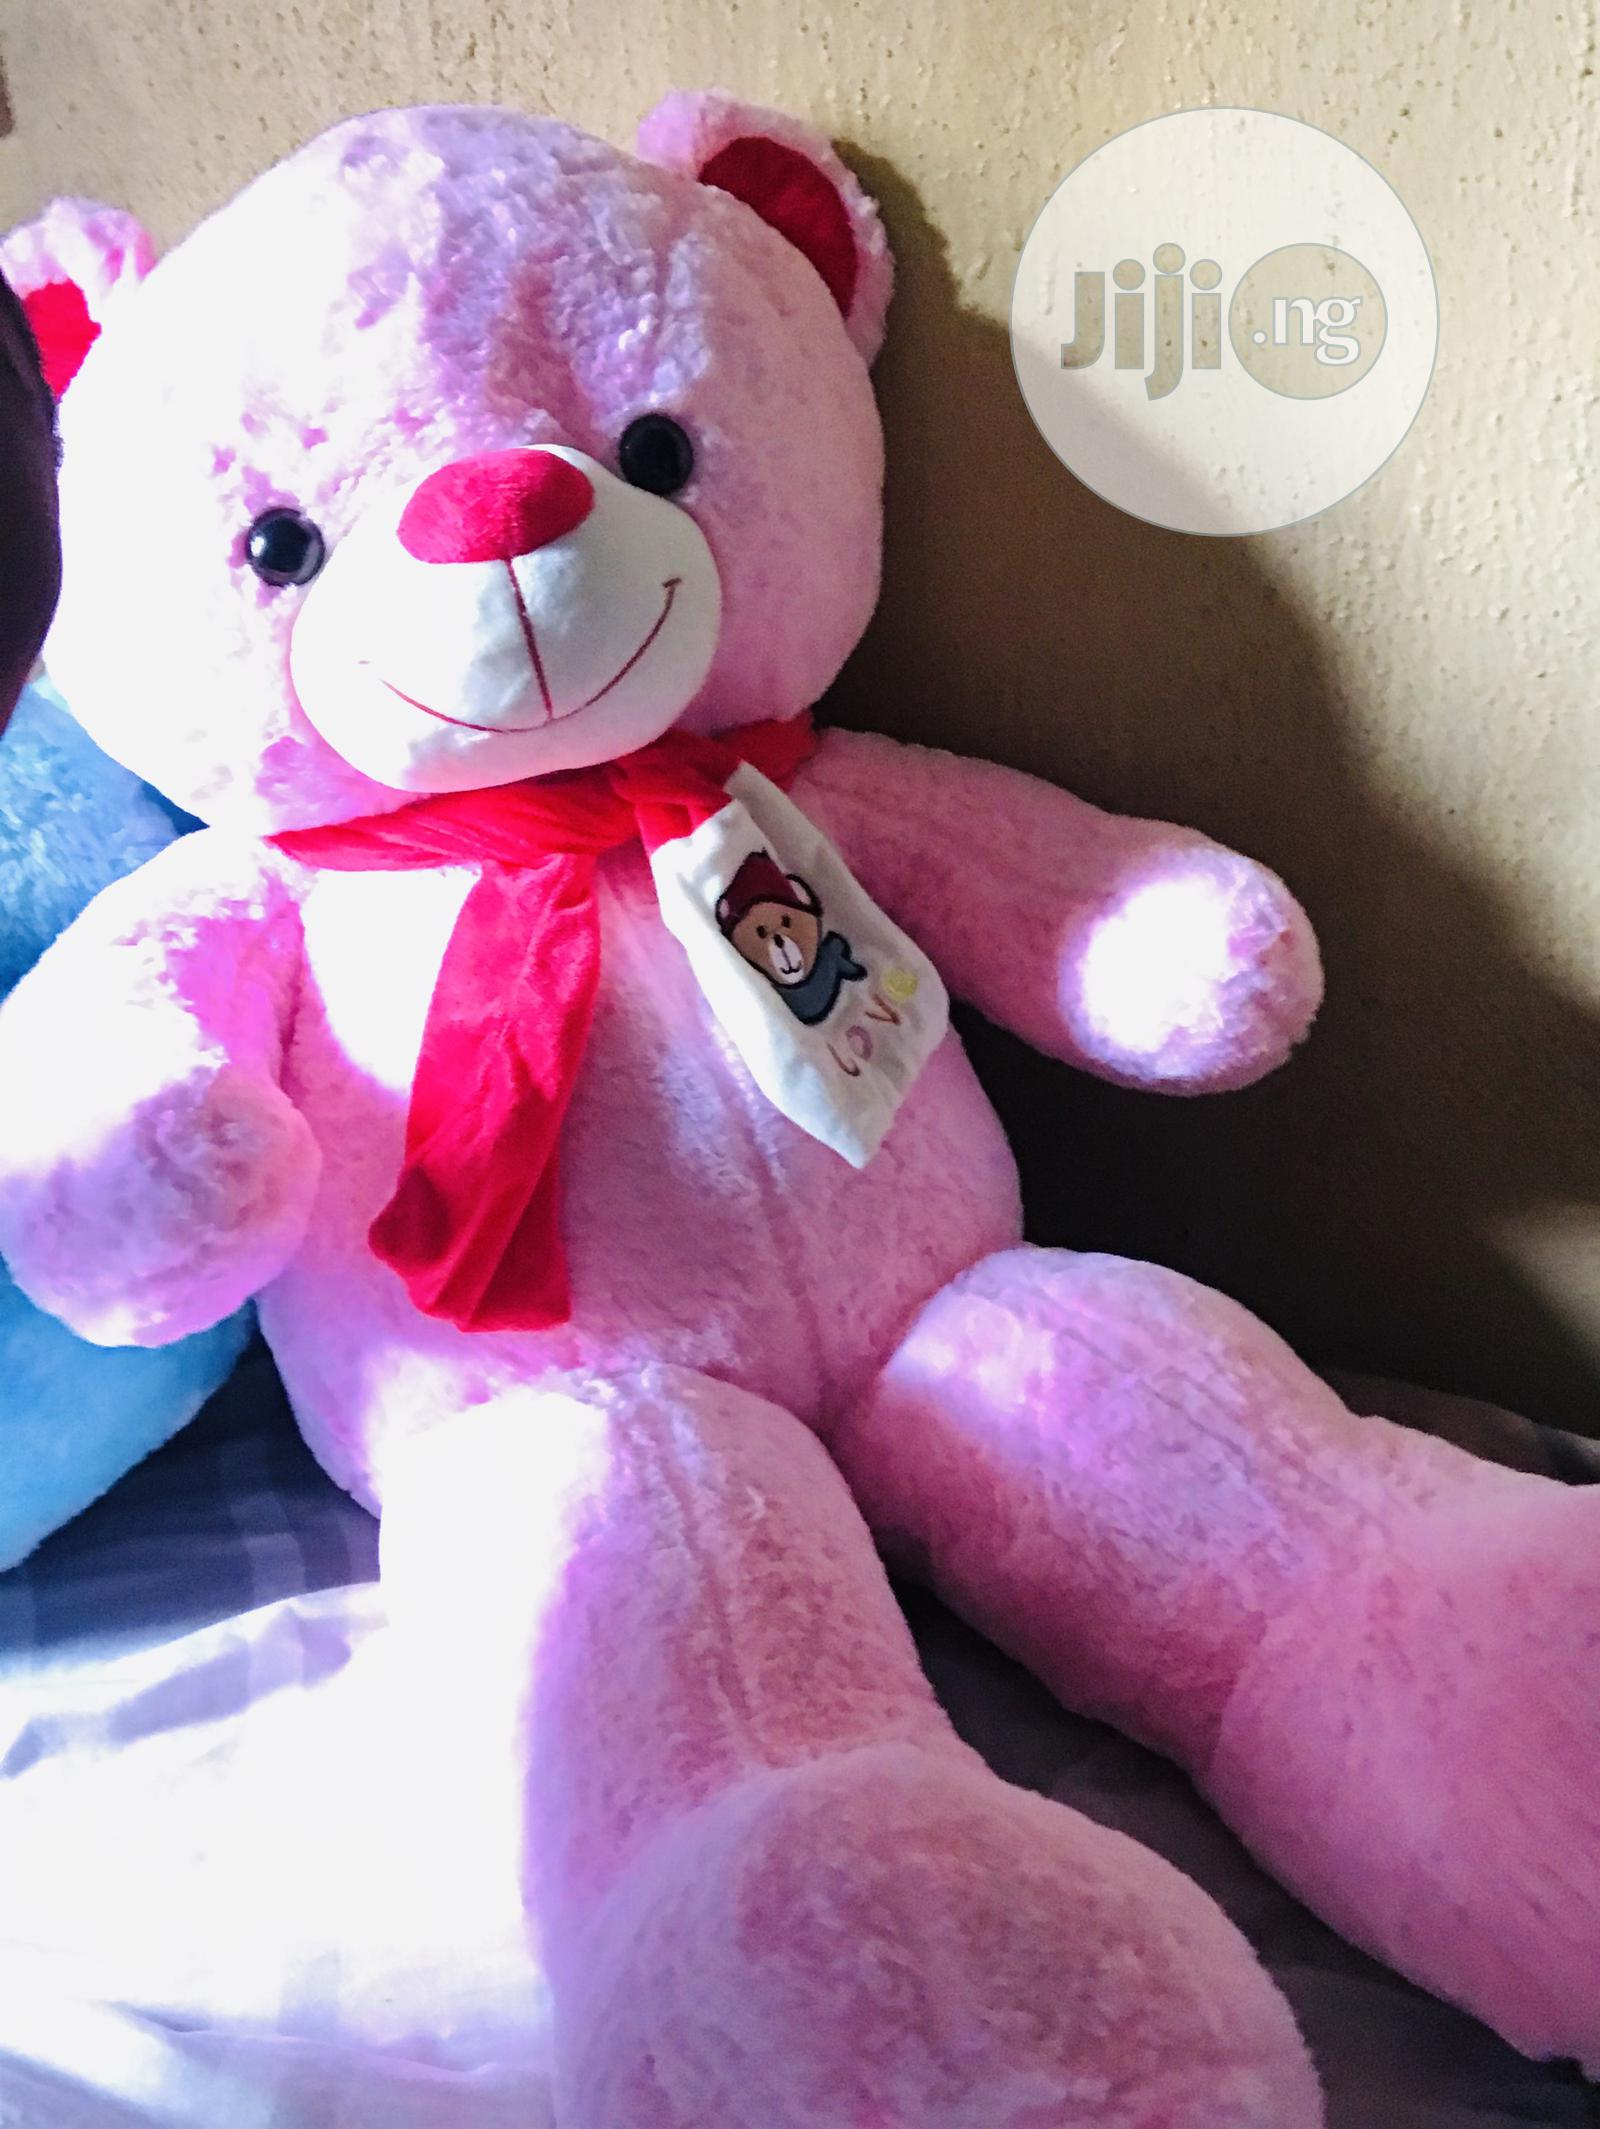 Giant Teddybear Available in Different Colors